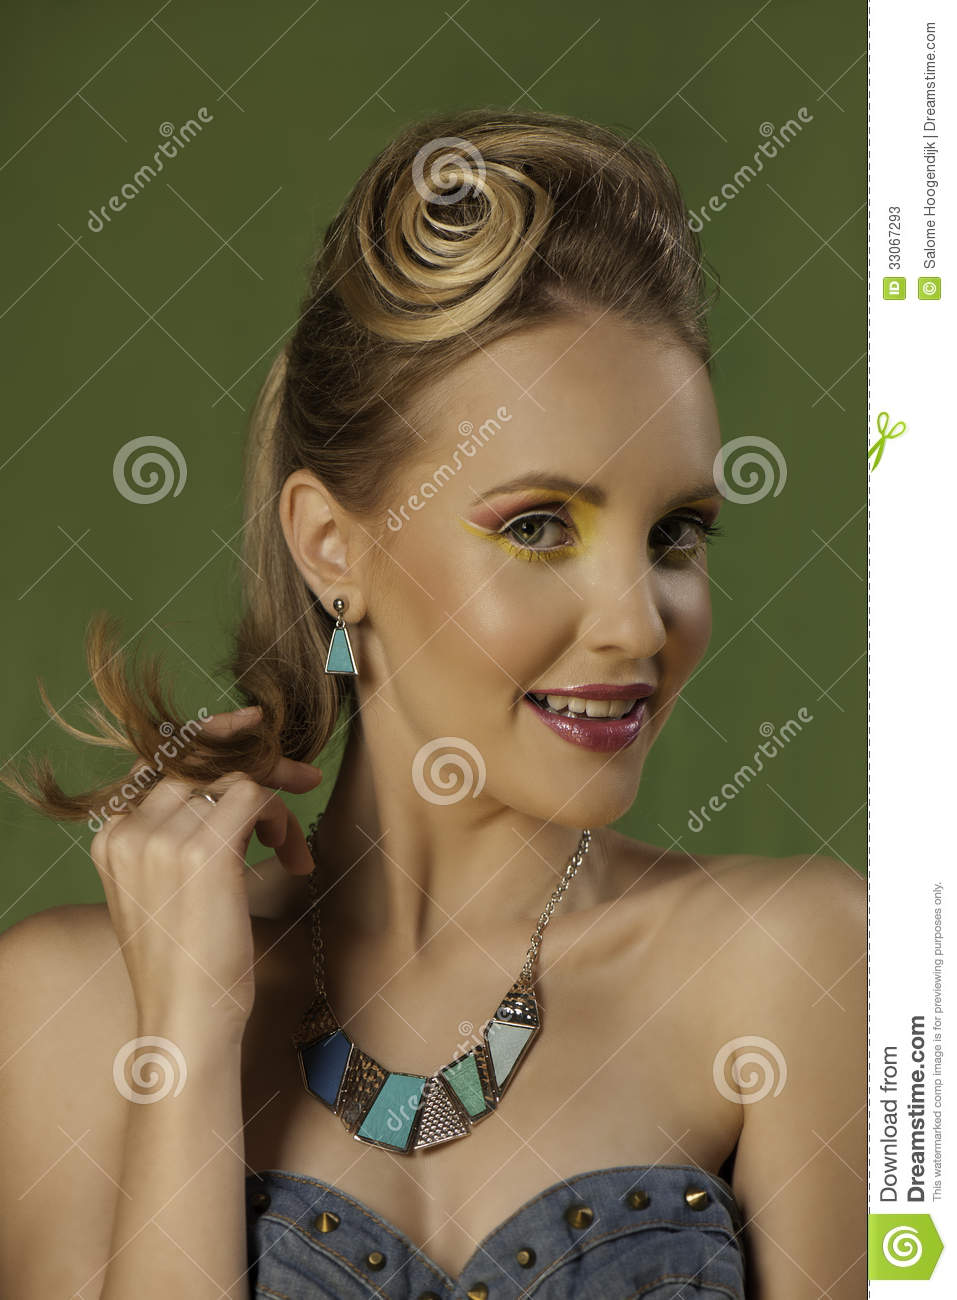 Colorful portrait of playful blonde girl in bright makeup